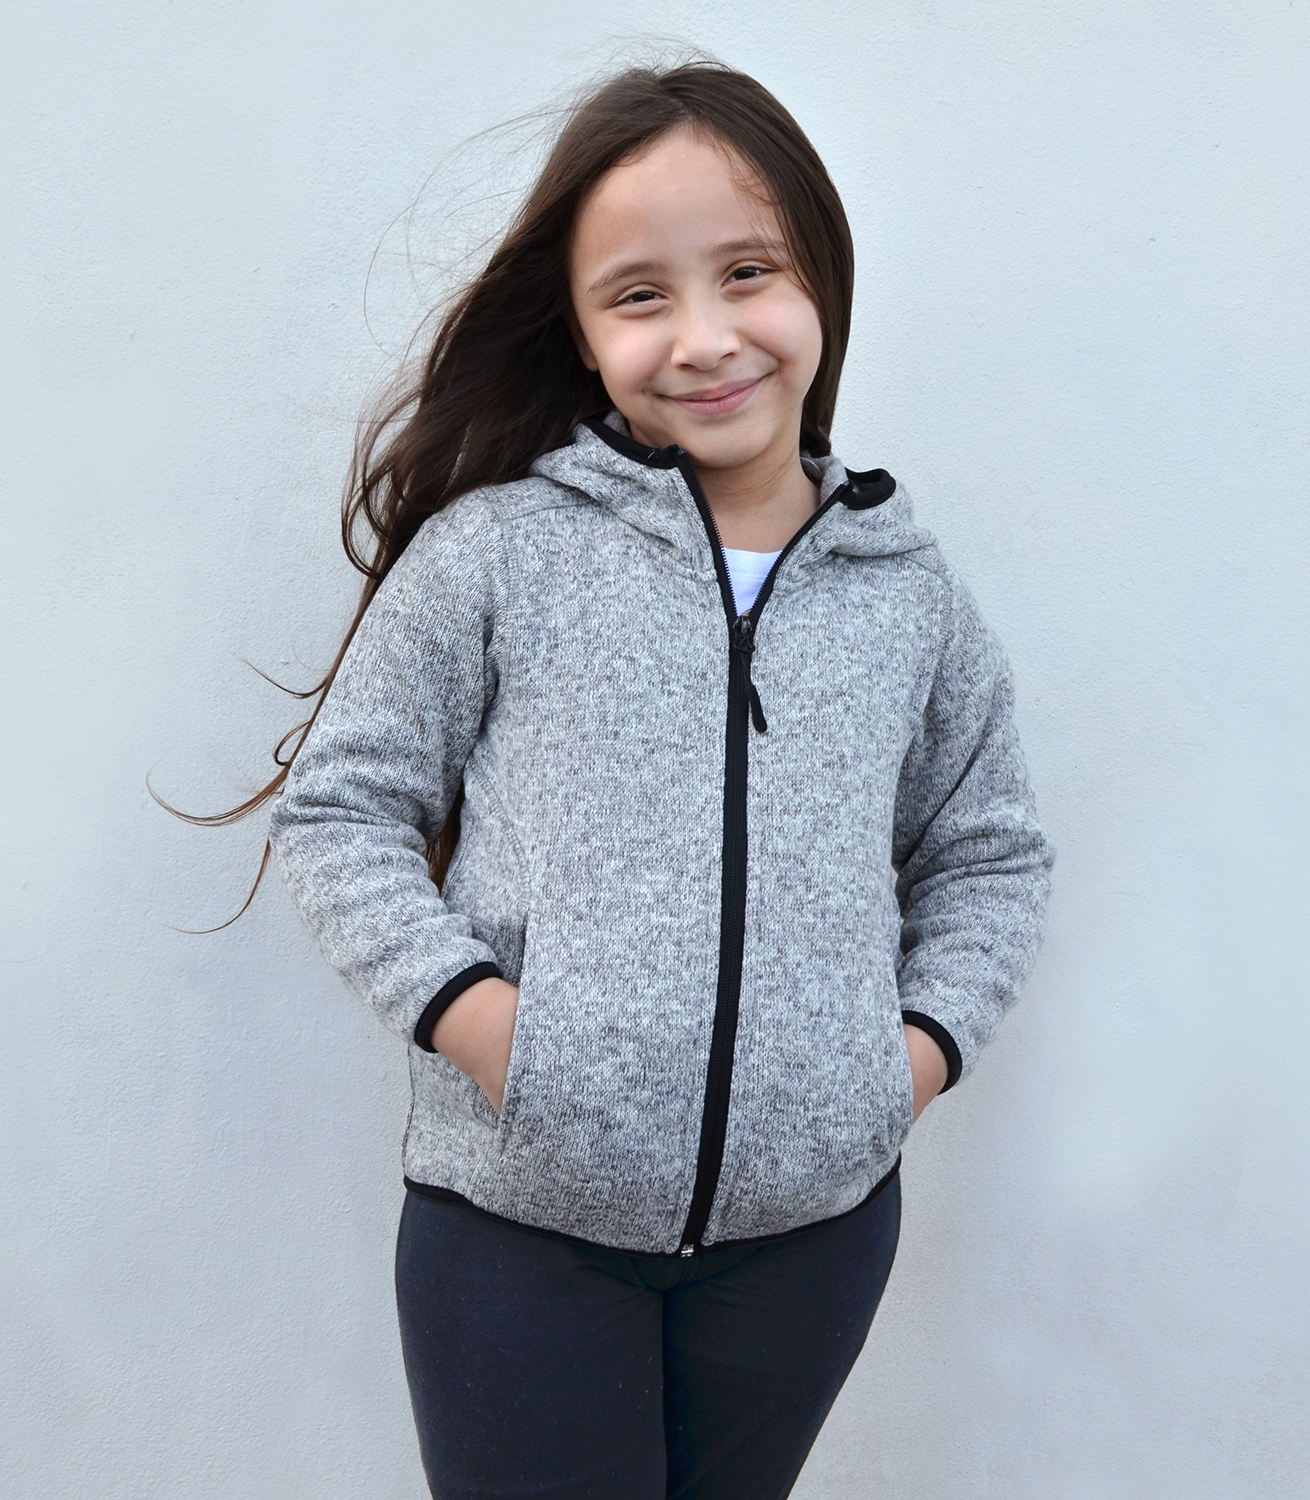 renegade youth loosely fitted jacket soft blanks for embroidery wholesale